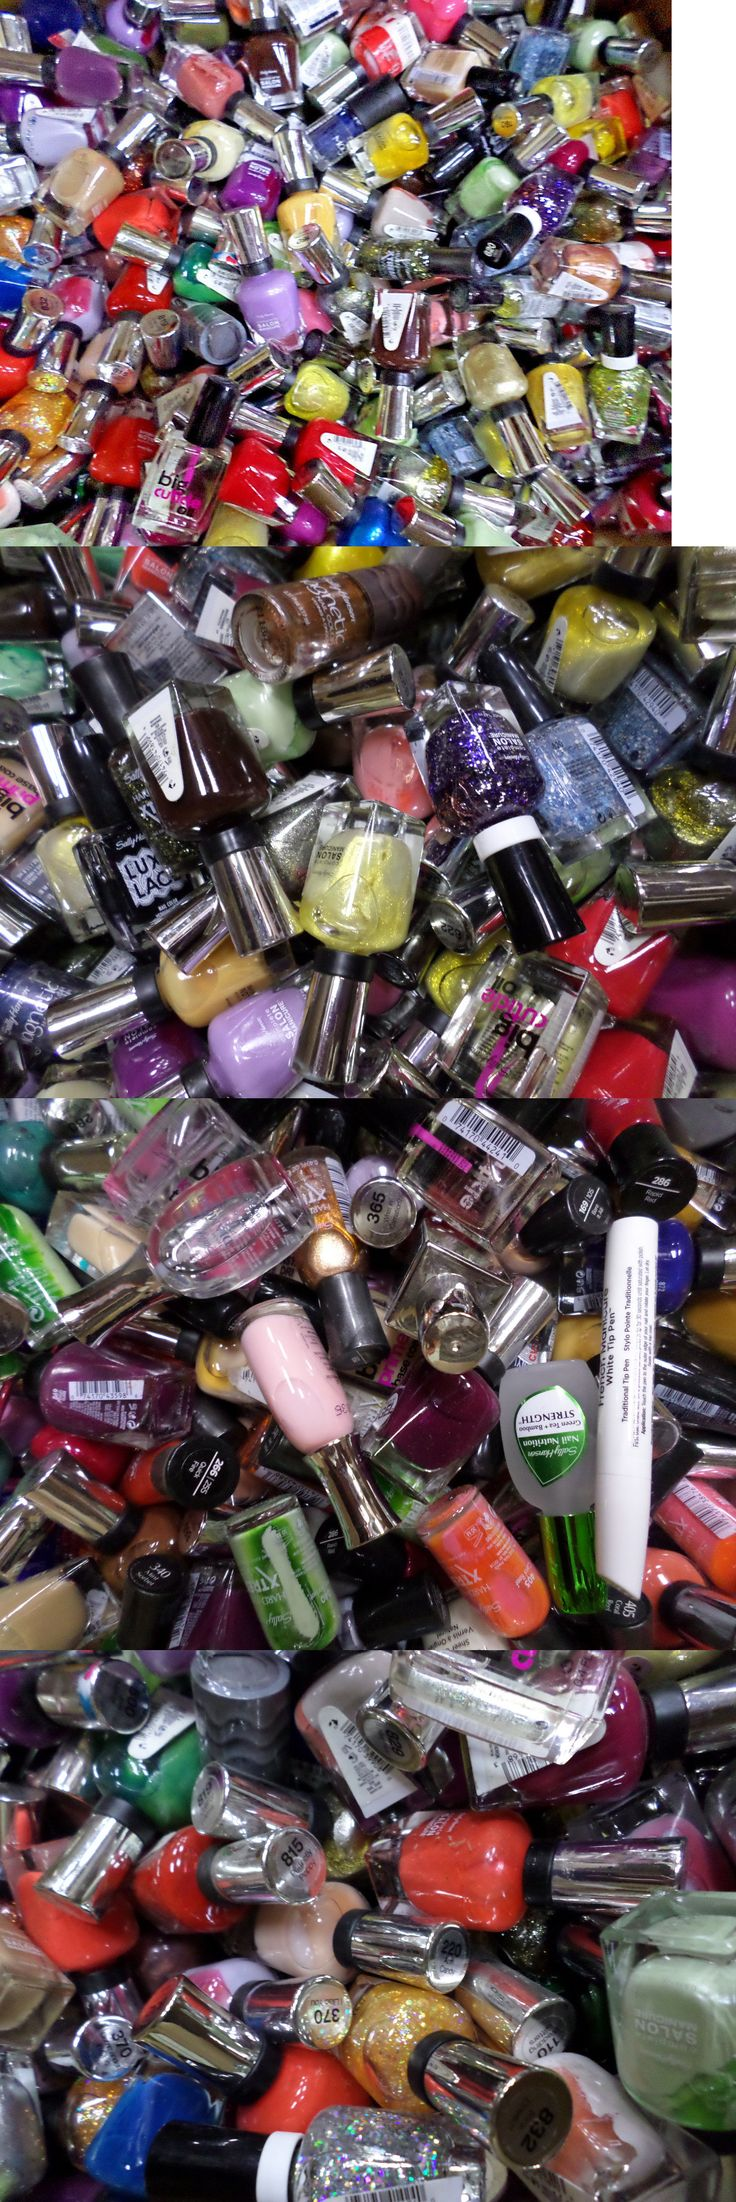 Nail Polish: Sally Hansen Wholesale Nail Polish Assorted You Choose Lot Size 25 50 100 -> BUY IT NOW ONLY: $64.99 on eBay!